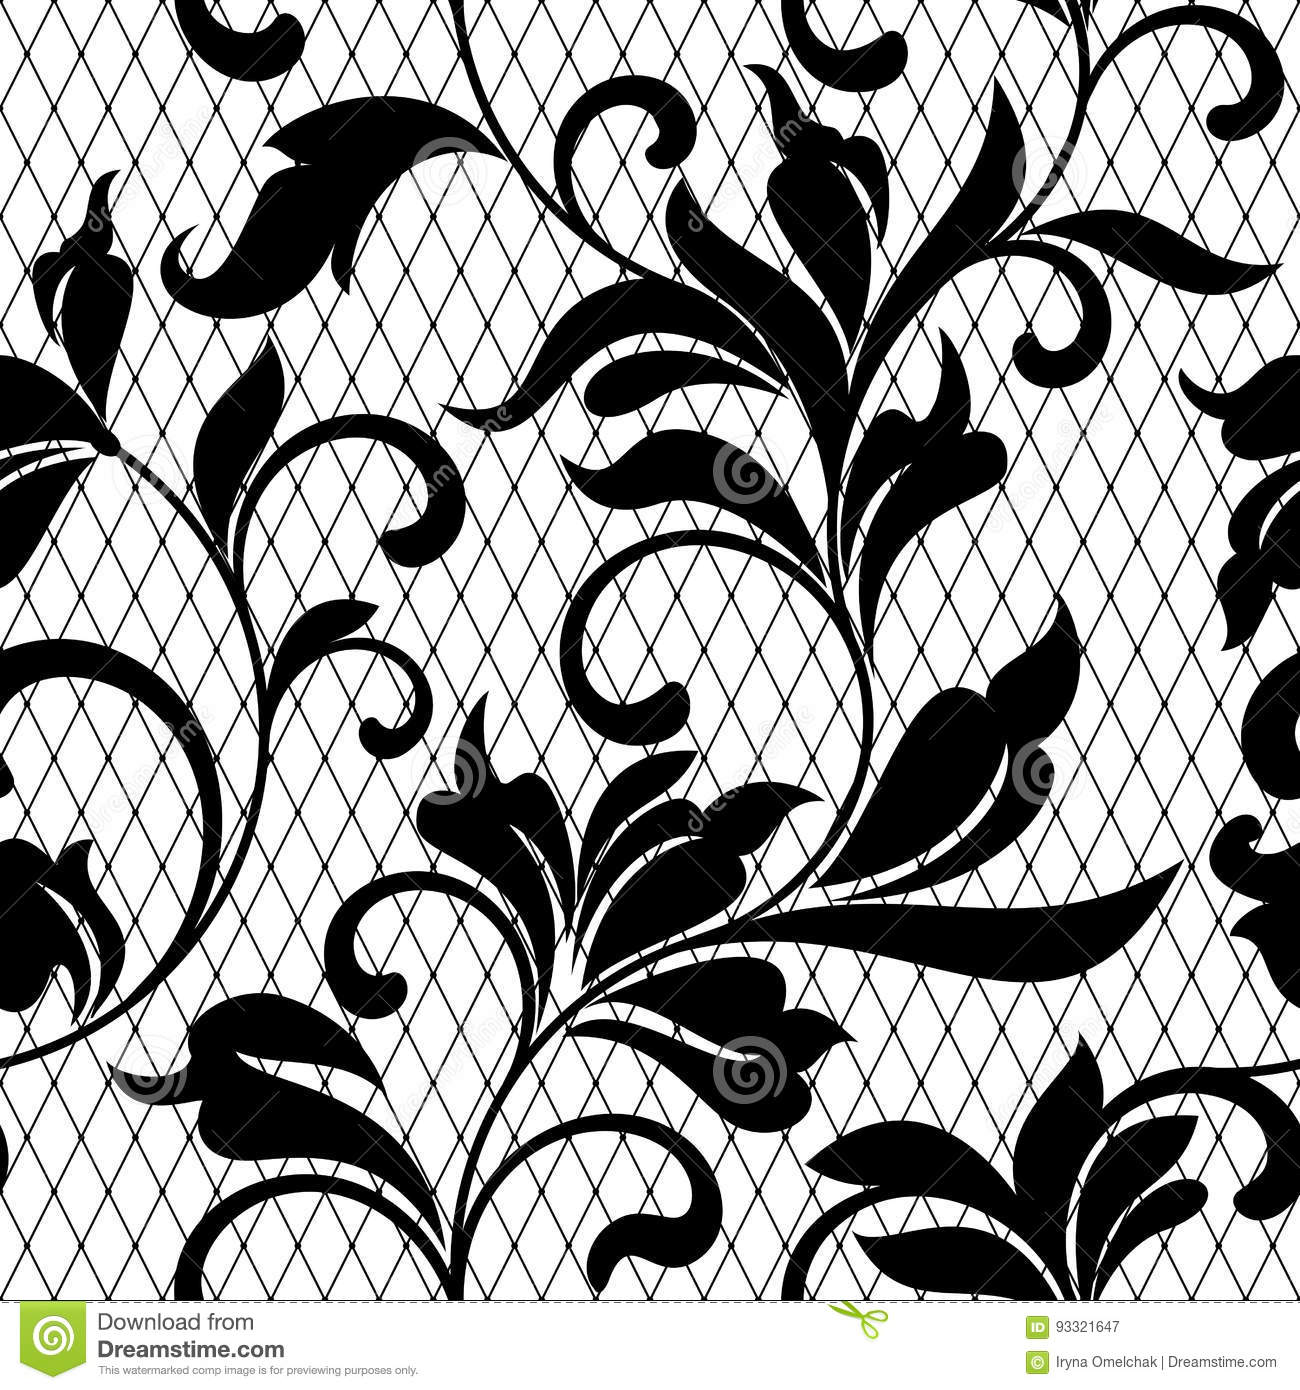 Lace Black Seamless Pattern With Flowers On White Backgroundlace Floral Background For Your Design Wallpapers Wrapping Pattern Stock Vector Illustration Of Backdrop Elegance 93321647